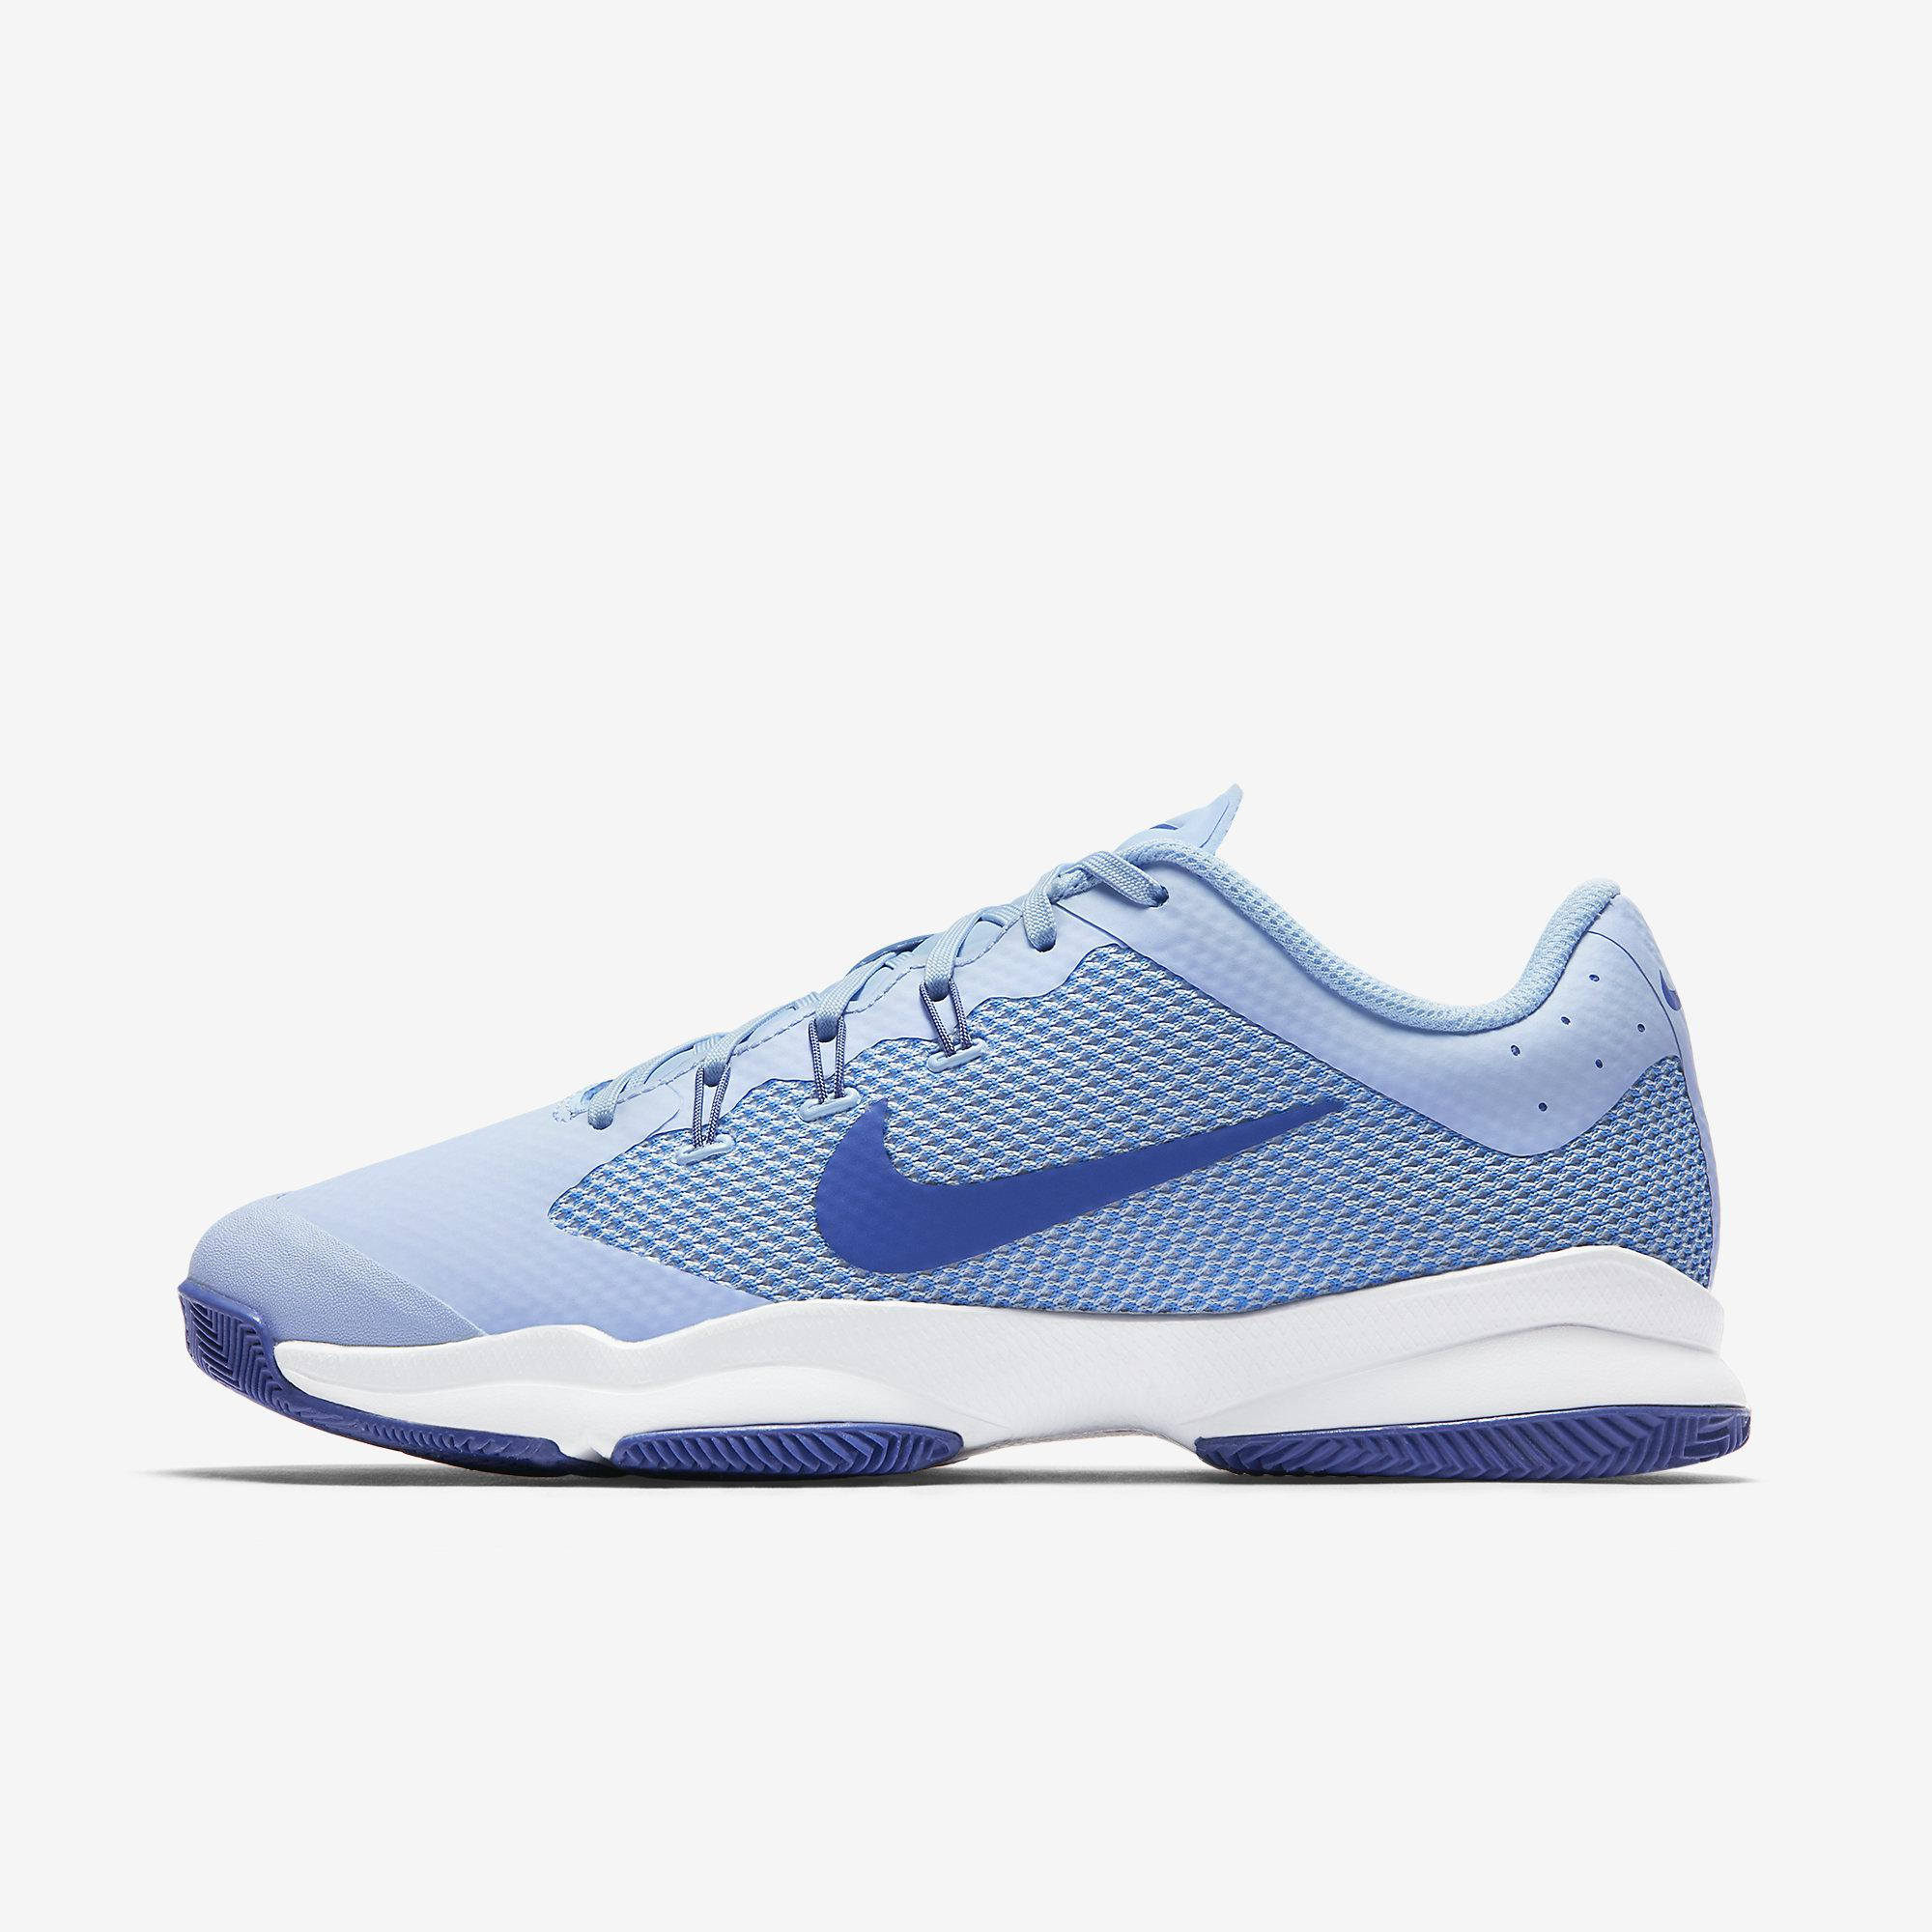 e7b6c9c5e120 Nike Womens Air Zoom Ultra Tennis Shoes - Ice Blue - Tennisnuts.com